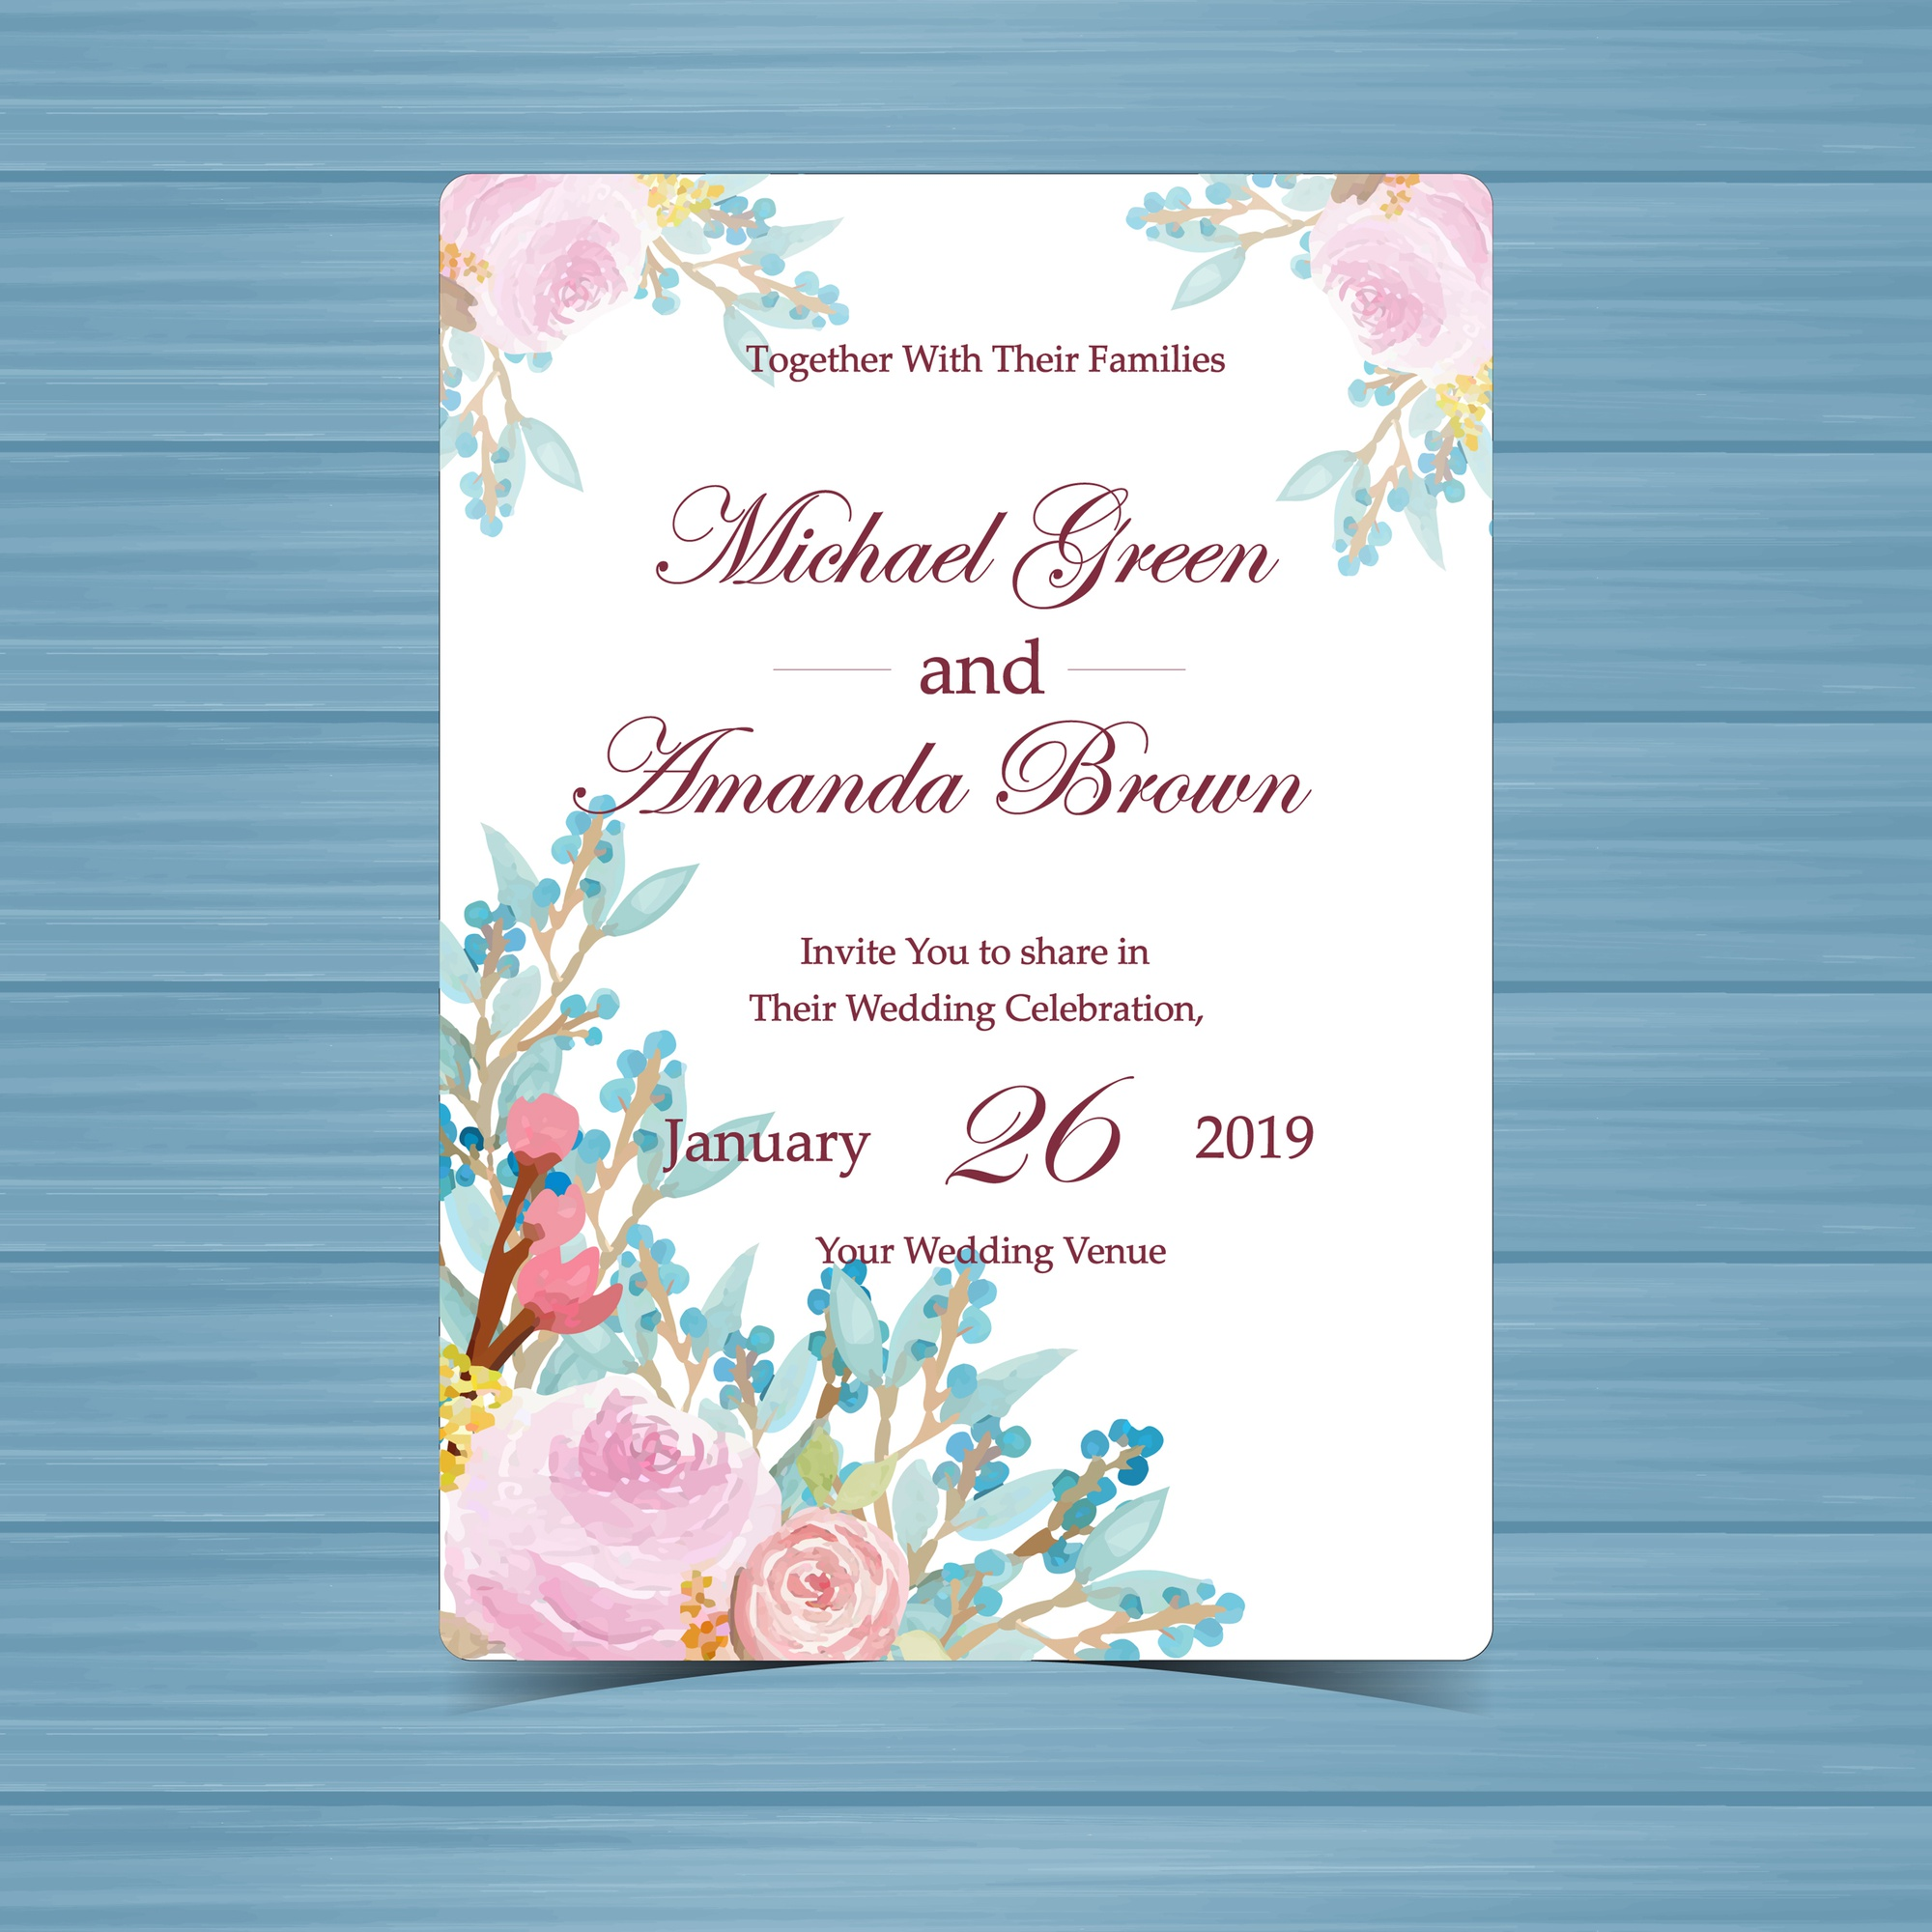 Floral Wedding Invitation with Beautiful Pink Roses